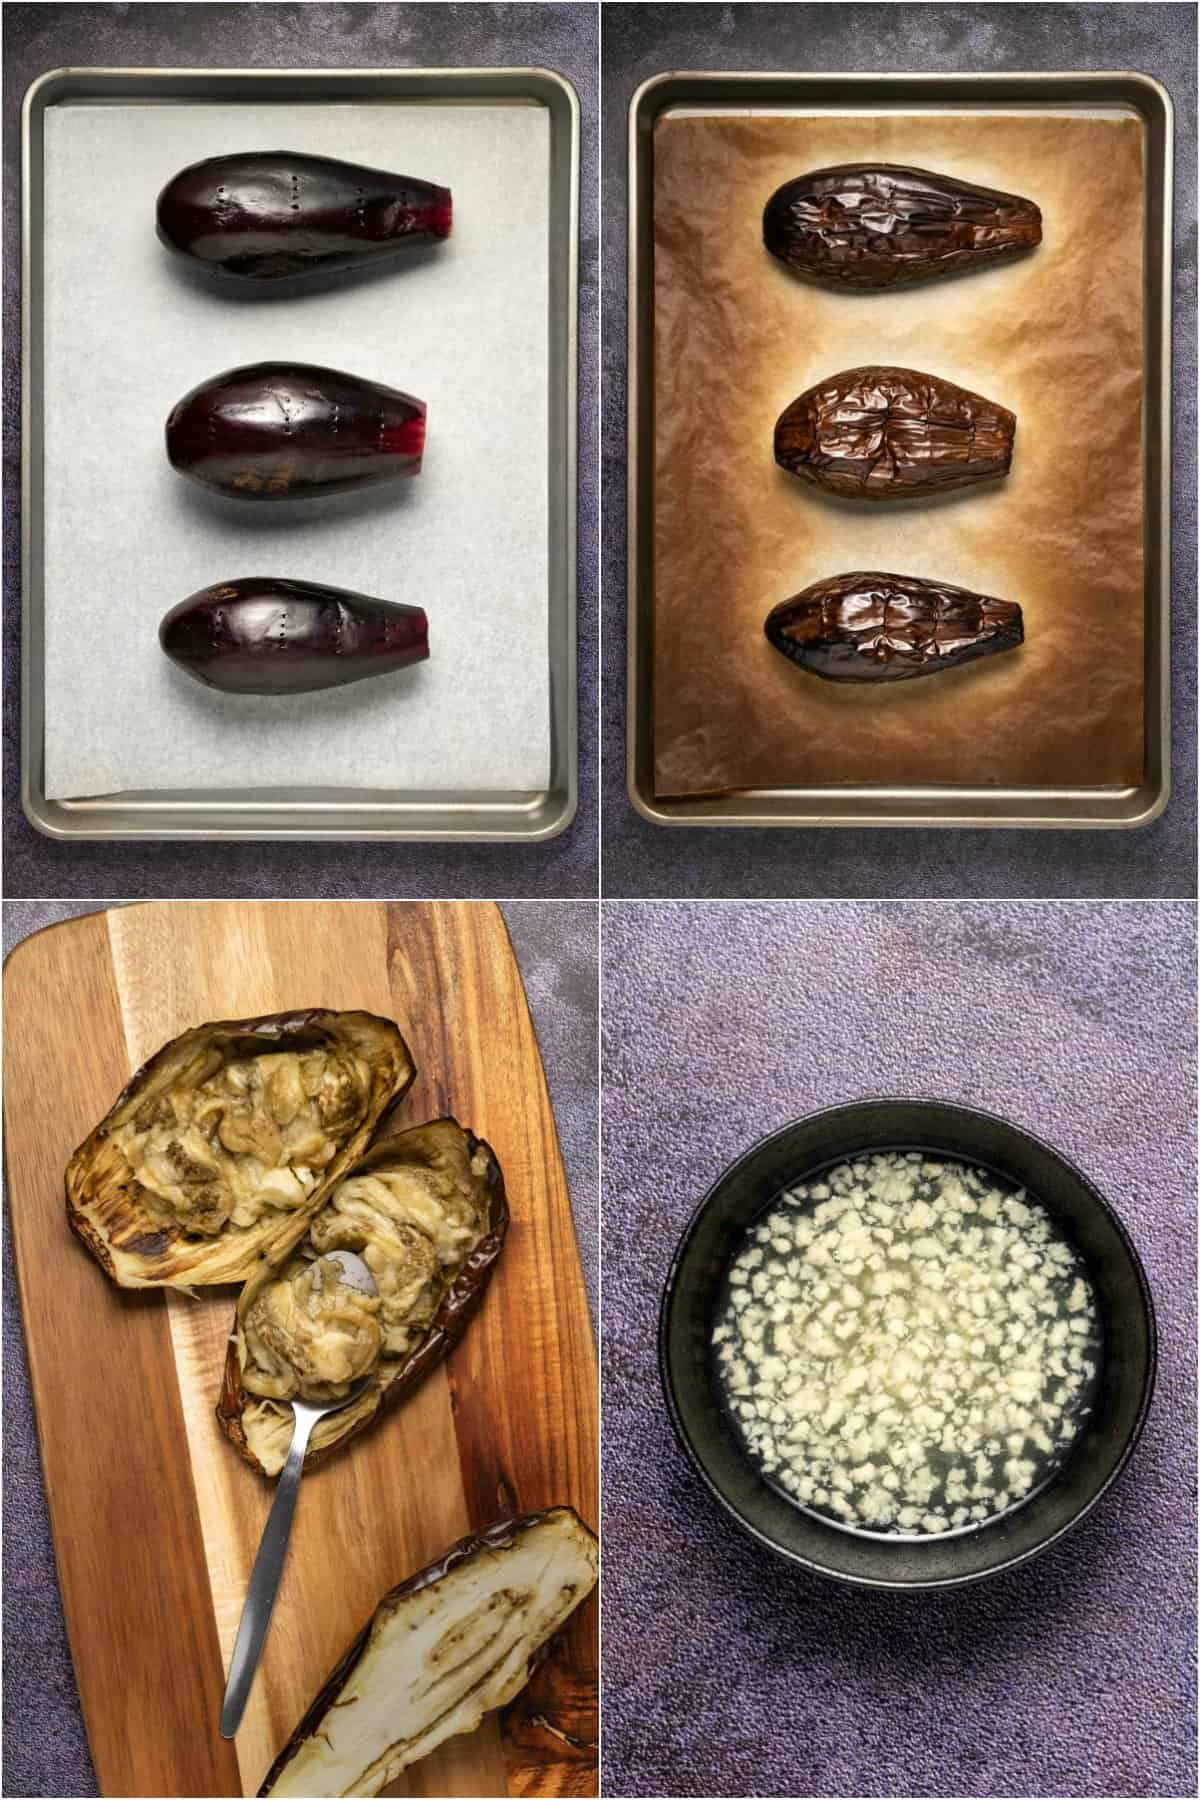 Step by step process photo collage of baking eggplant.